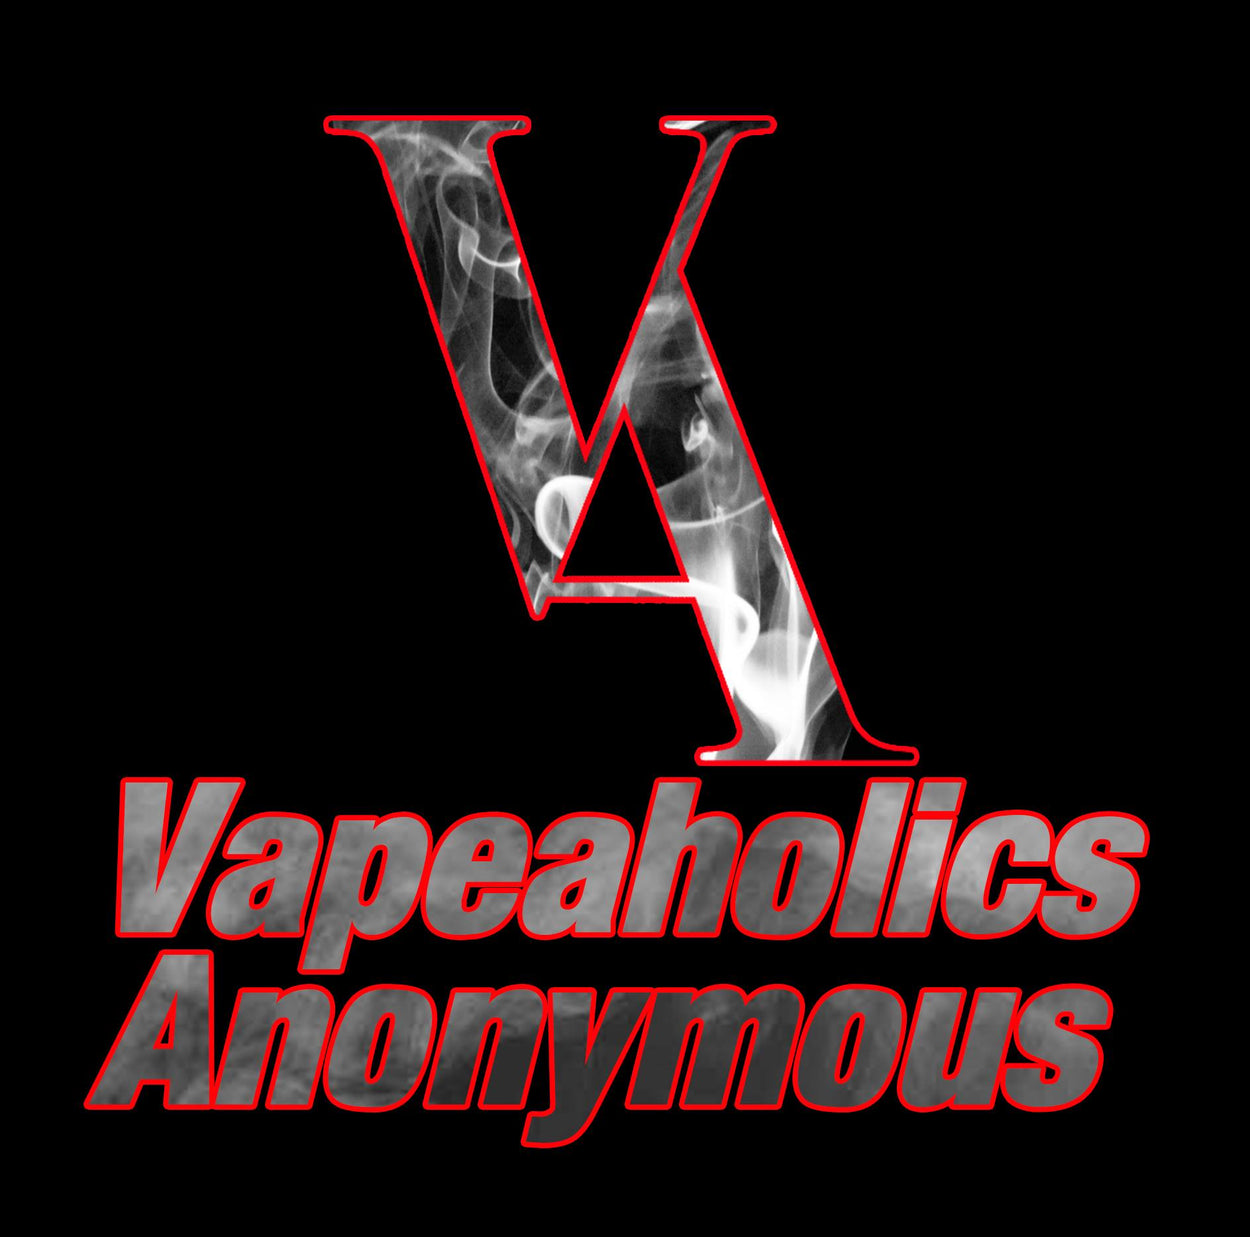 Vapeaholics Anonymous